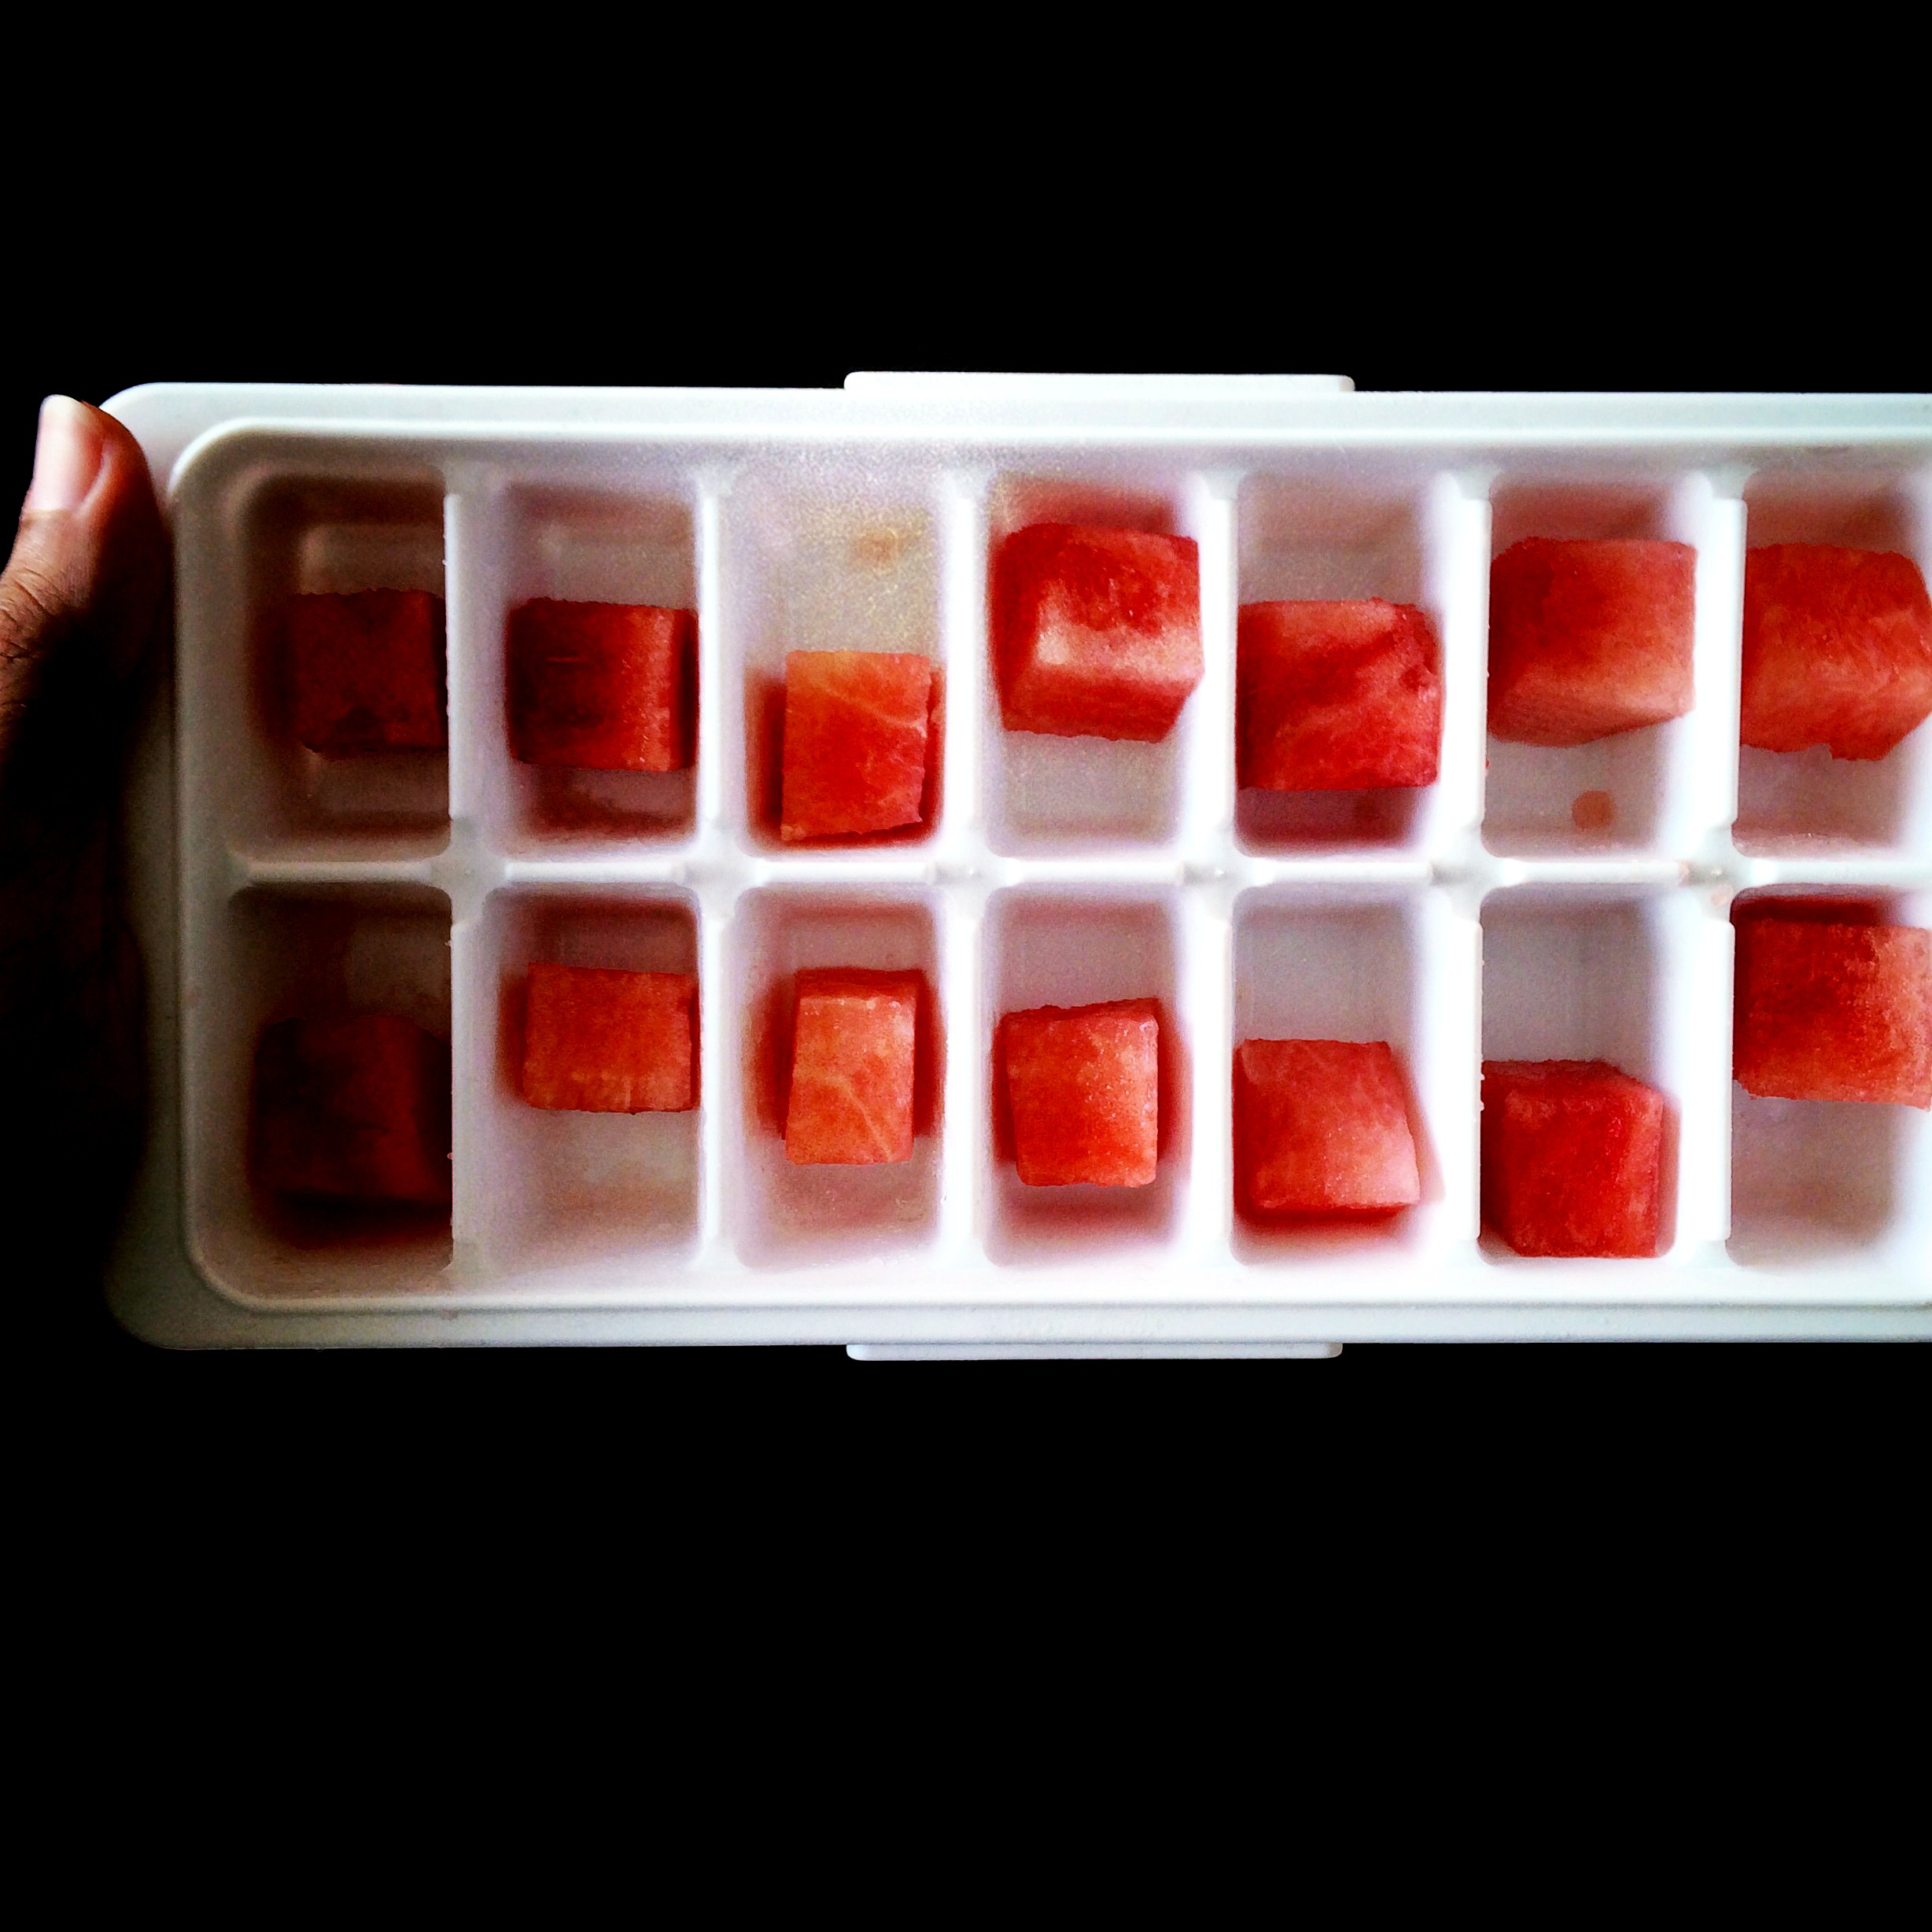 FrozenWatermellon1